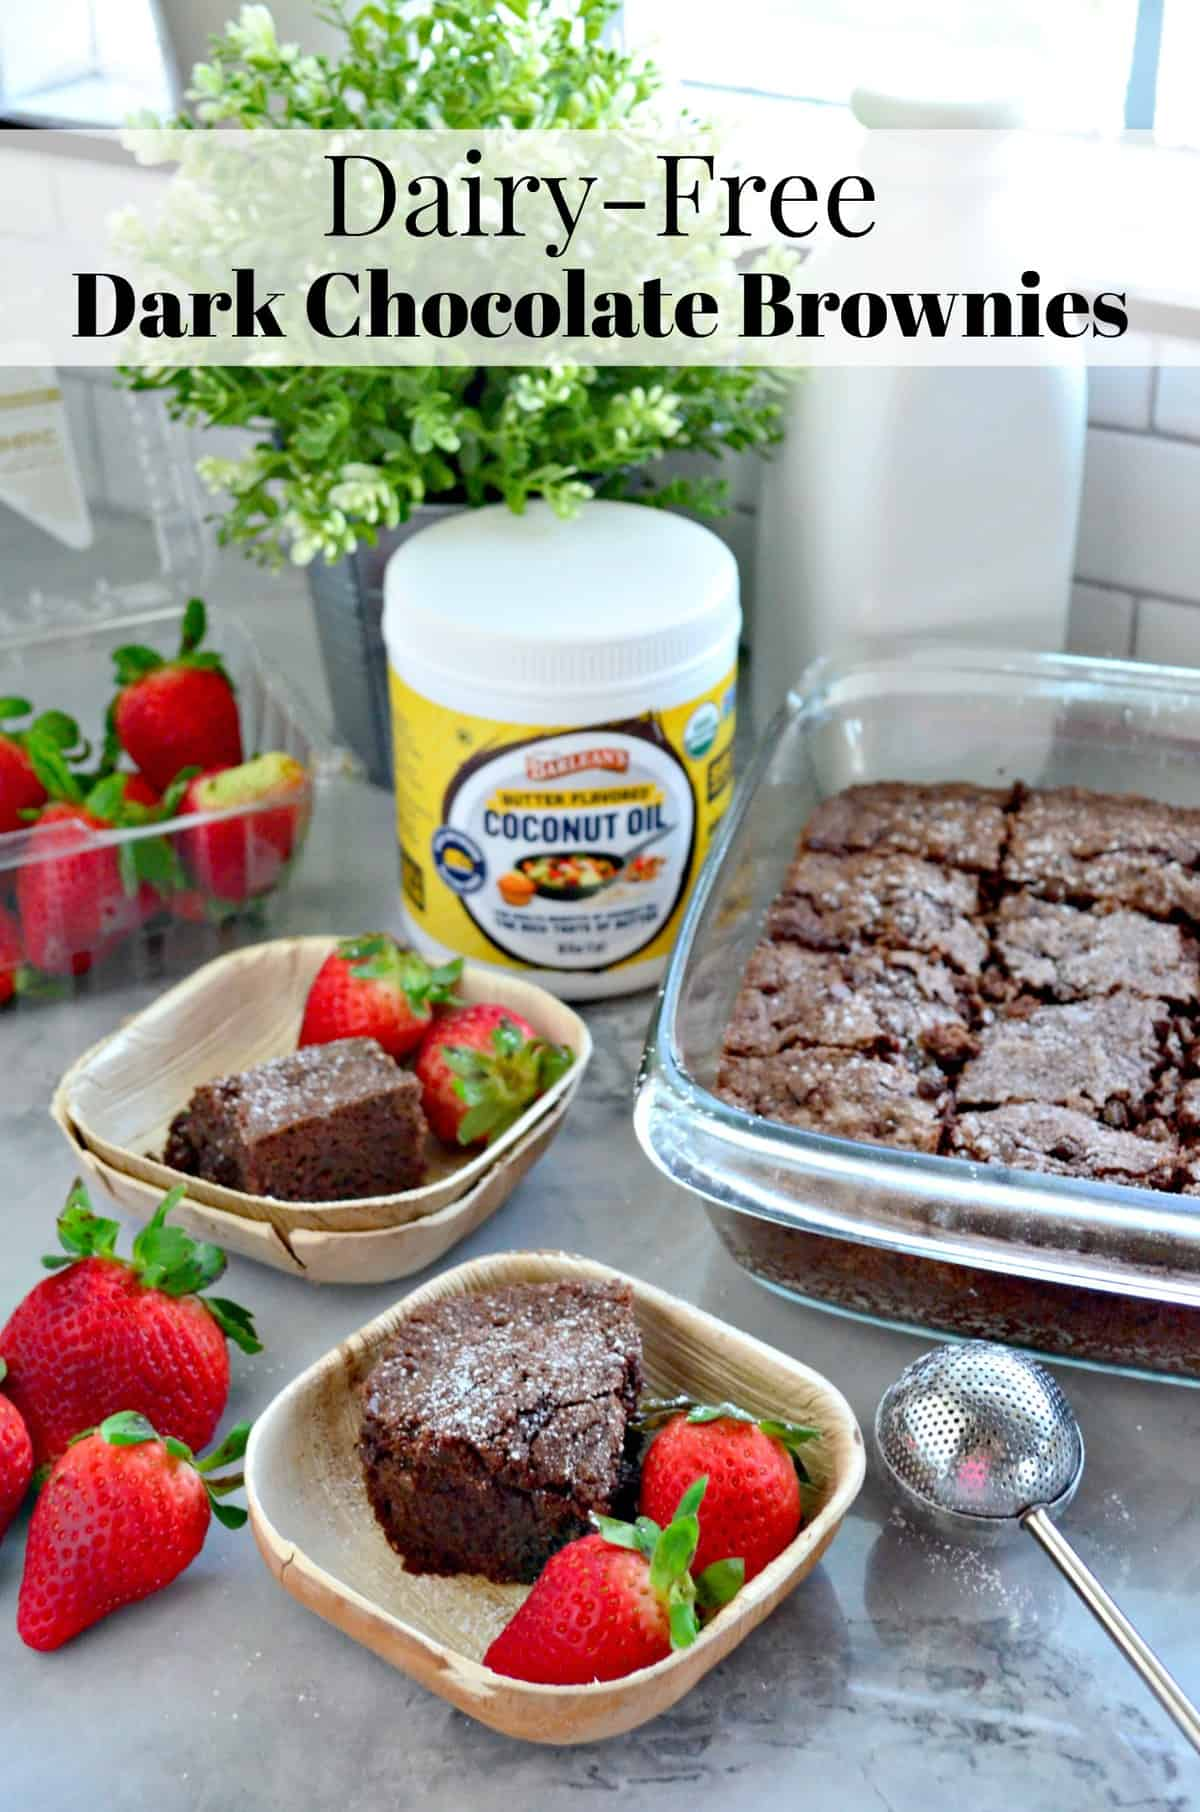 2 square bowls with slice of chocolate brownie and fresh strawberries in front of brownie pan.